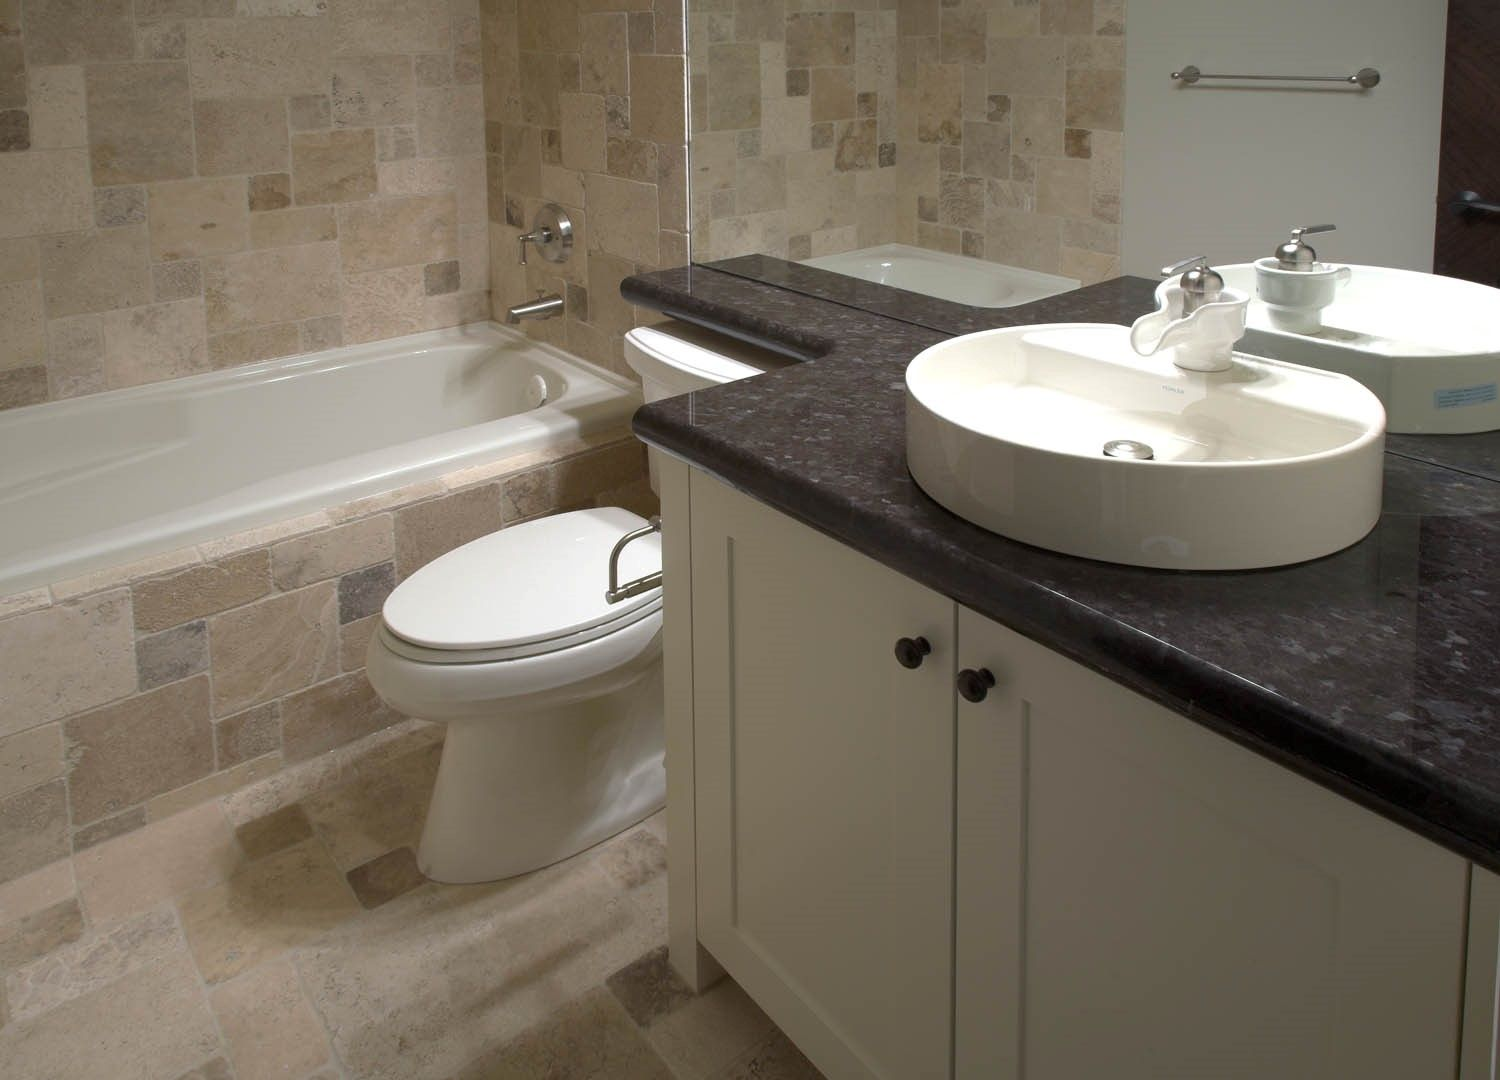 Bathroom ideas bathroom countertops with black marble - Black marble bathroom countertops ...